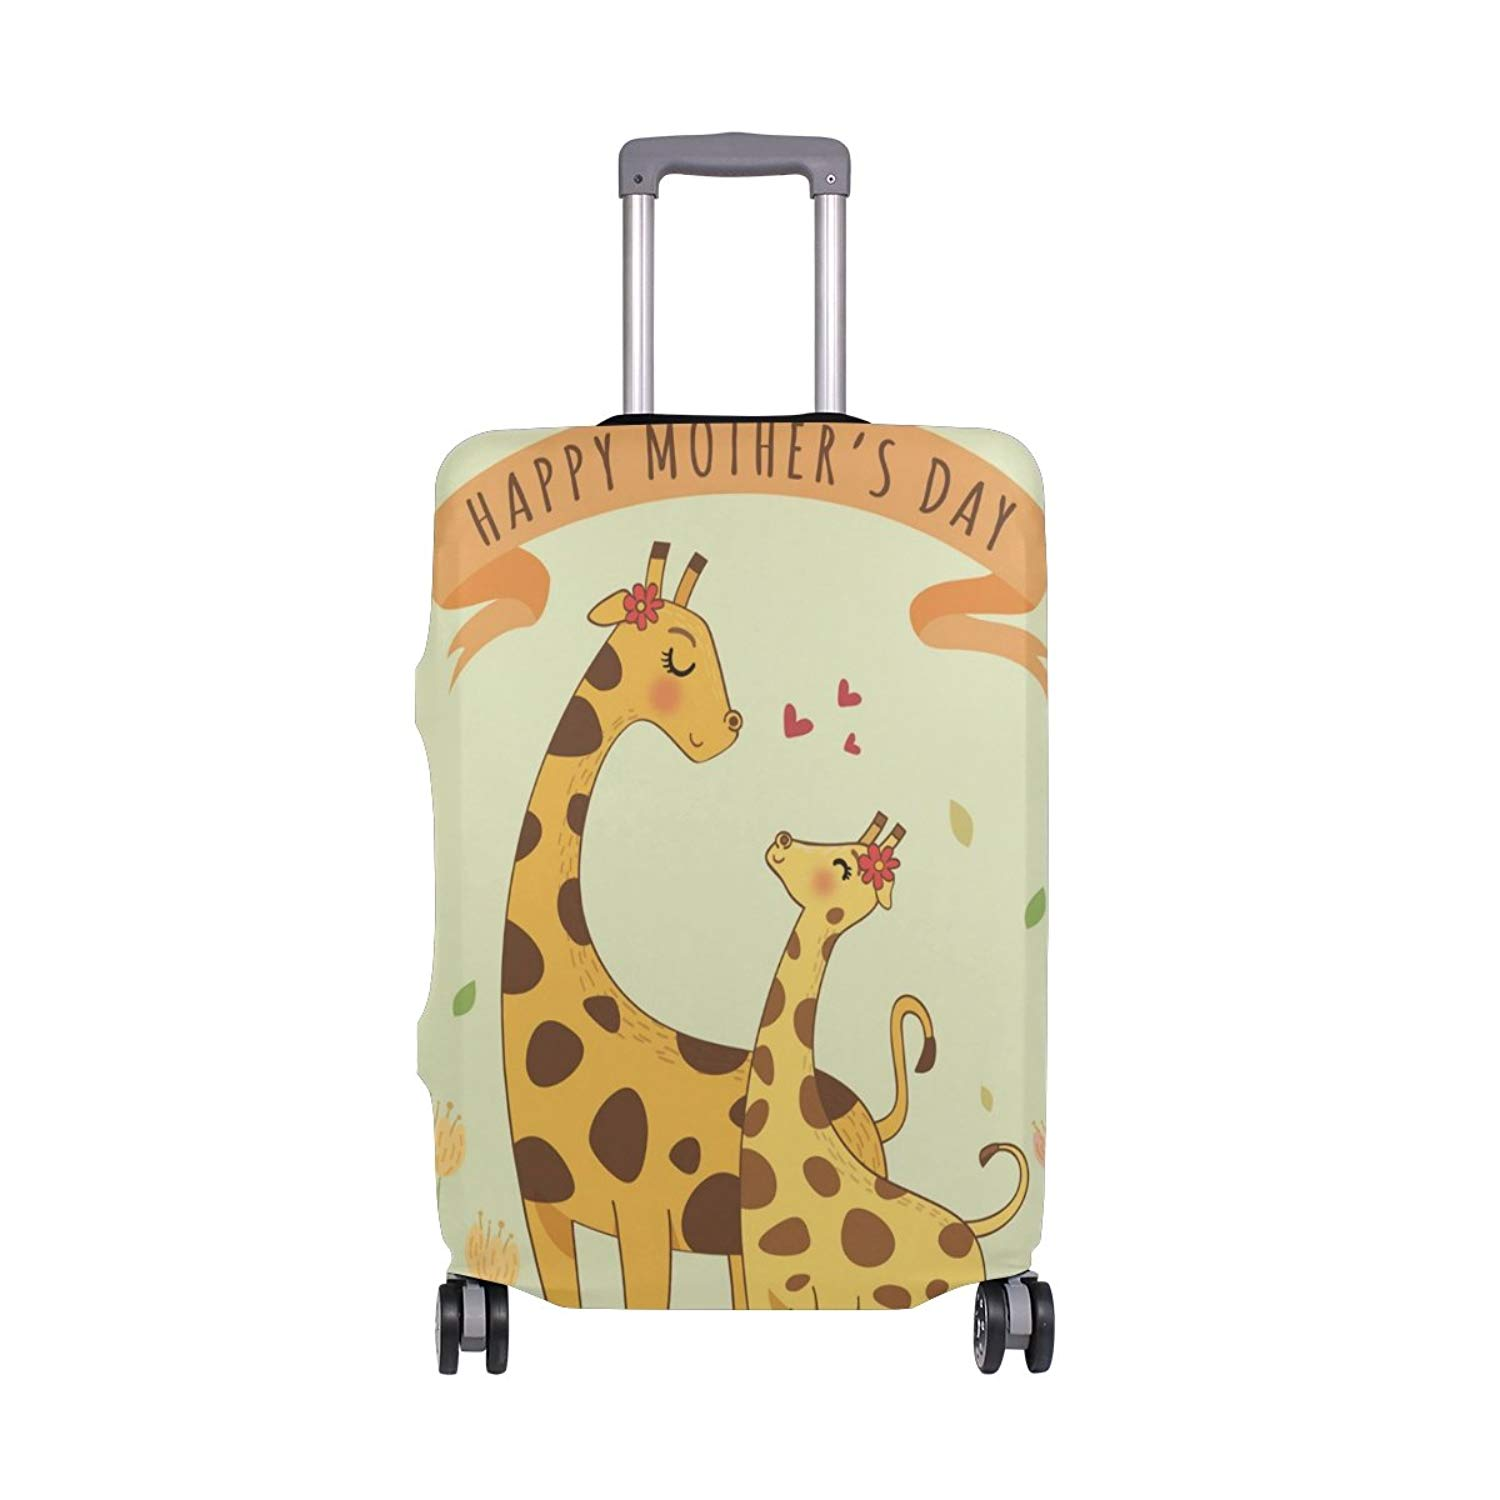 Washable Foldable Luggage Cover Protector Fits 18-21 Inch Suitcase Covers Cute Colorful Rainbow Unicorn